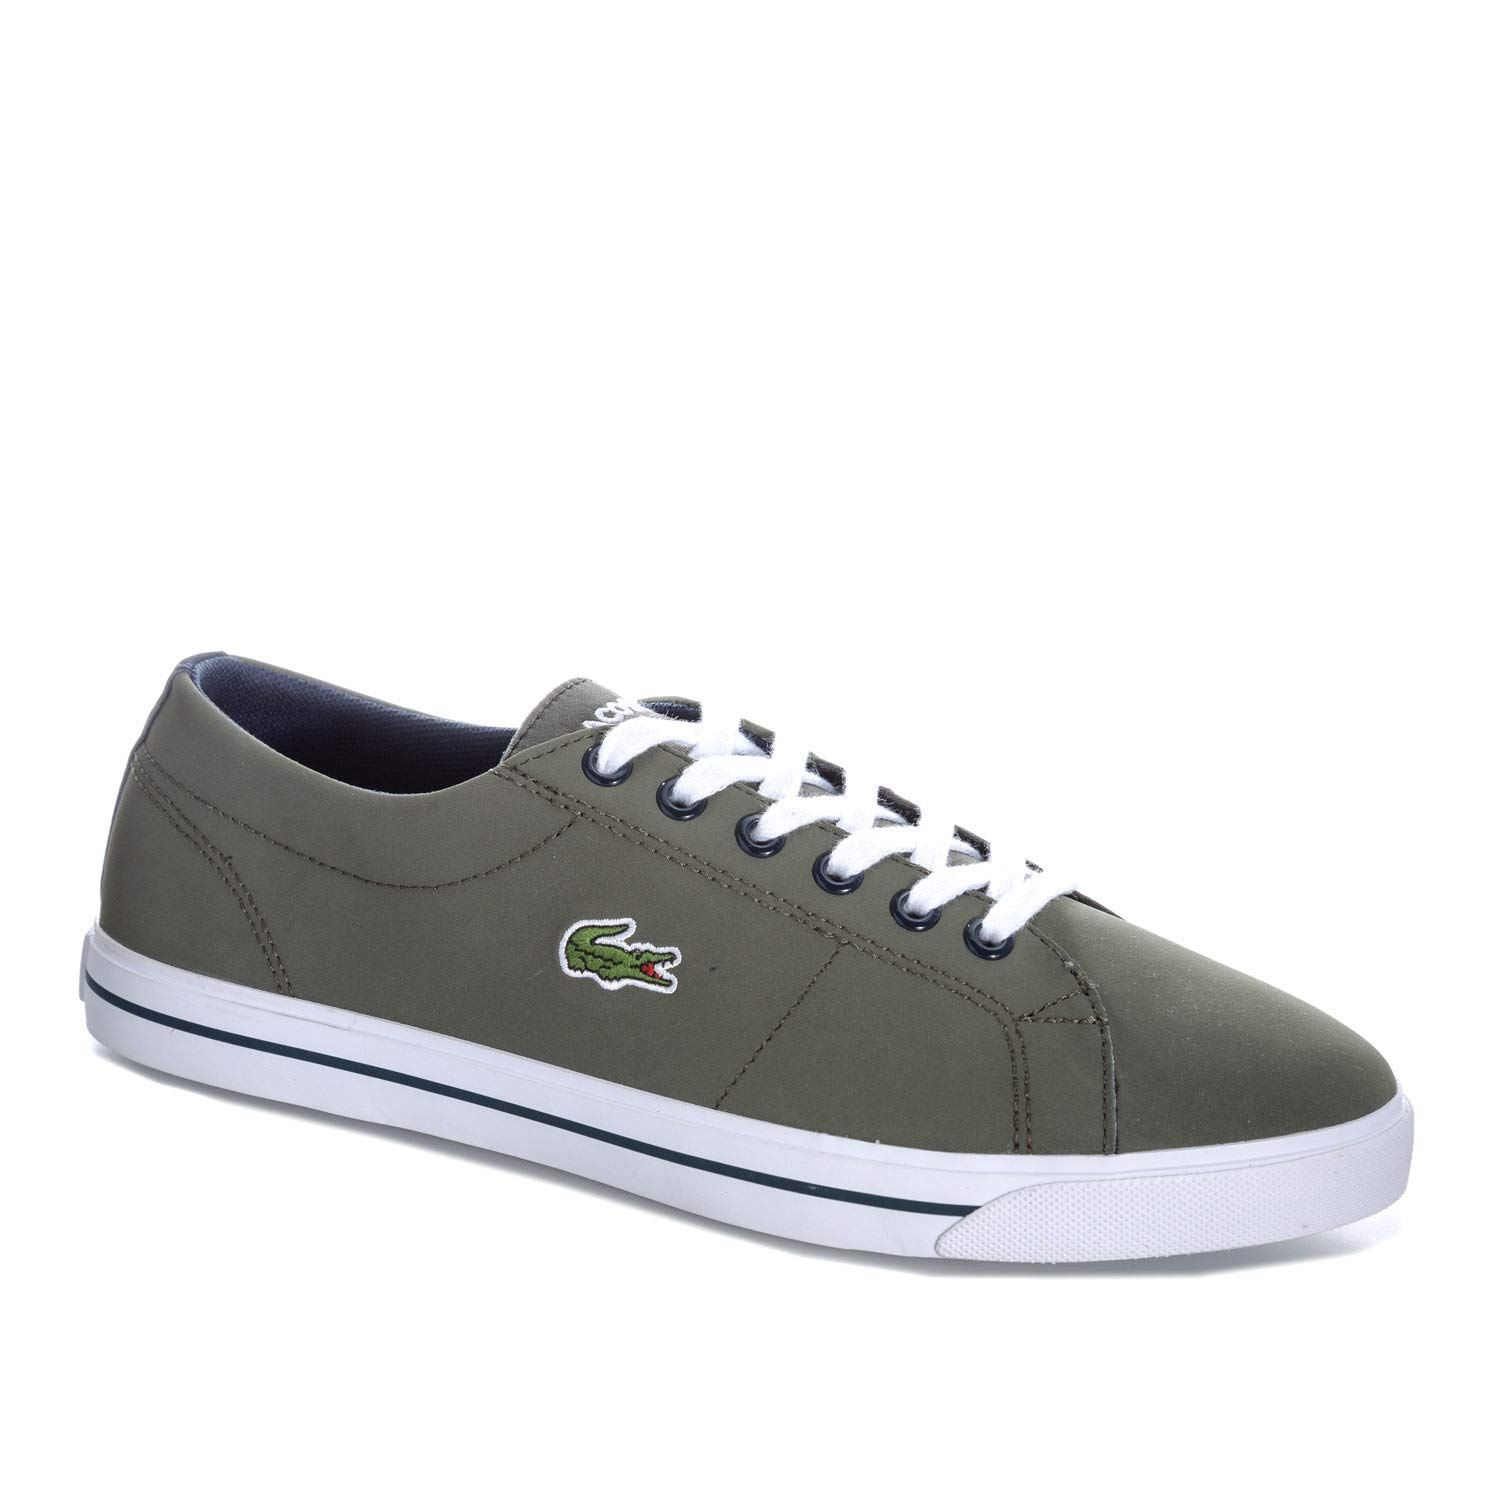 d63cf7623d91e Lacoste Junior Boys Riberac 318 Trainers in Khaki  Amazon.co.uk  Shoes    Bags